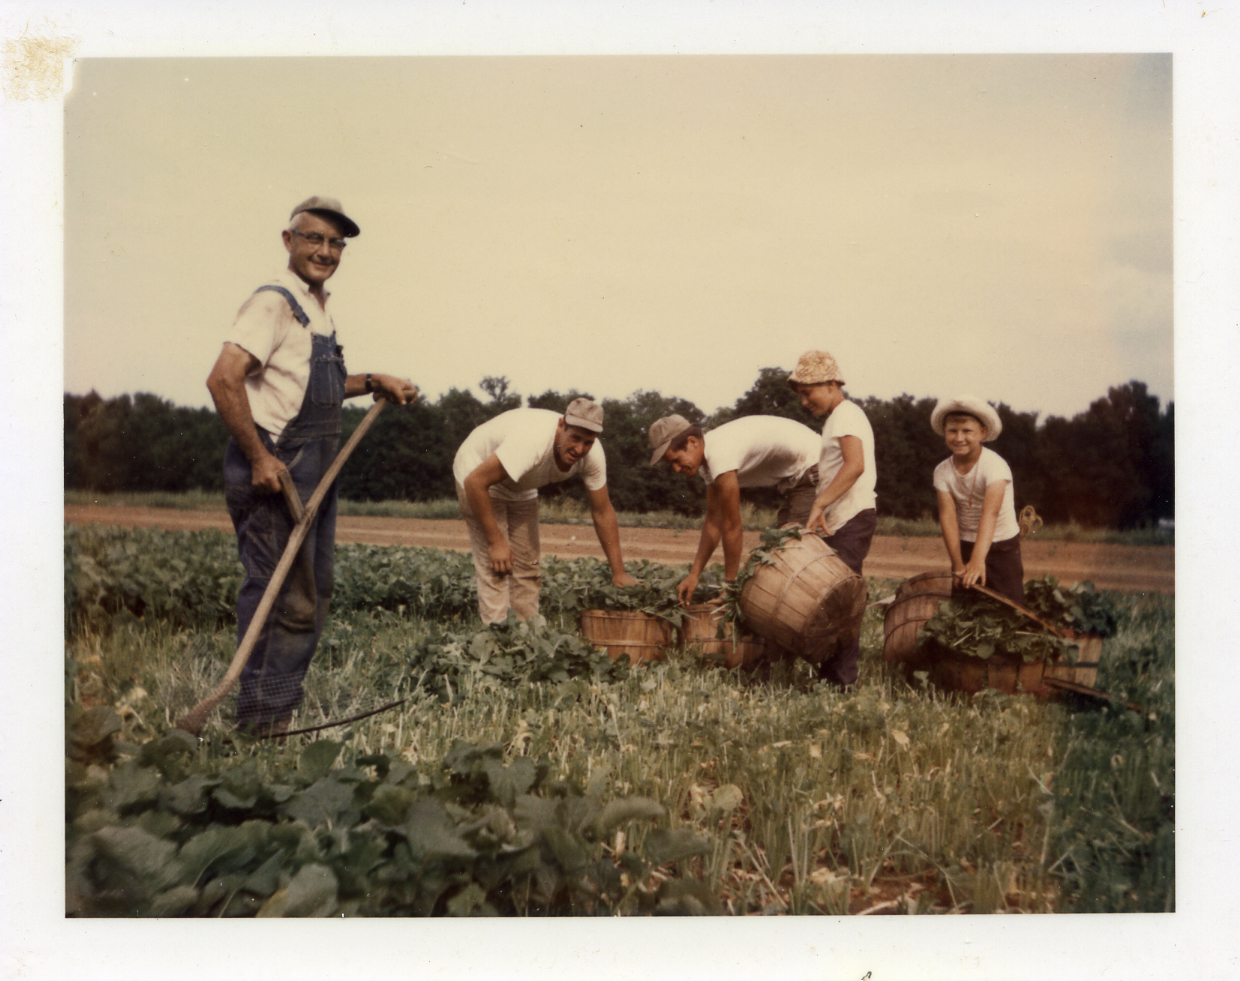 My great-grandfather, Louis Baltz, working on his farm.